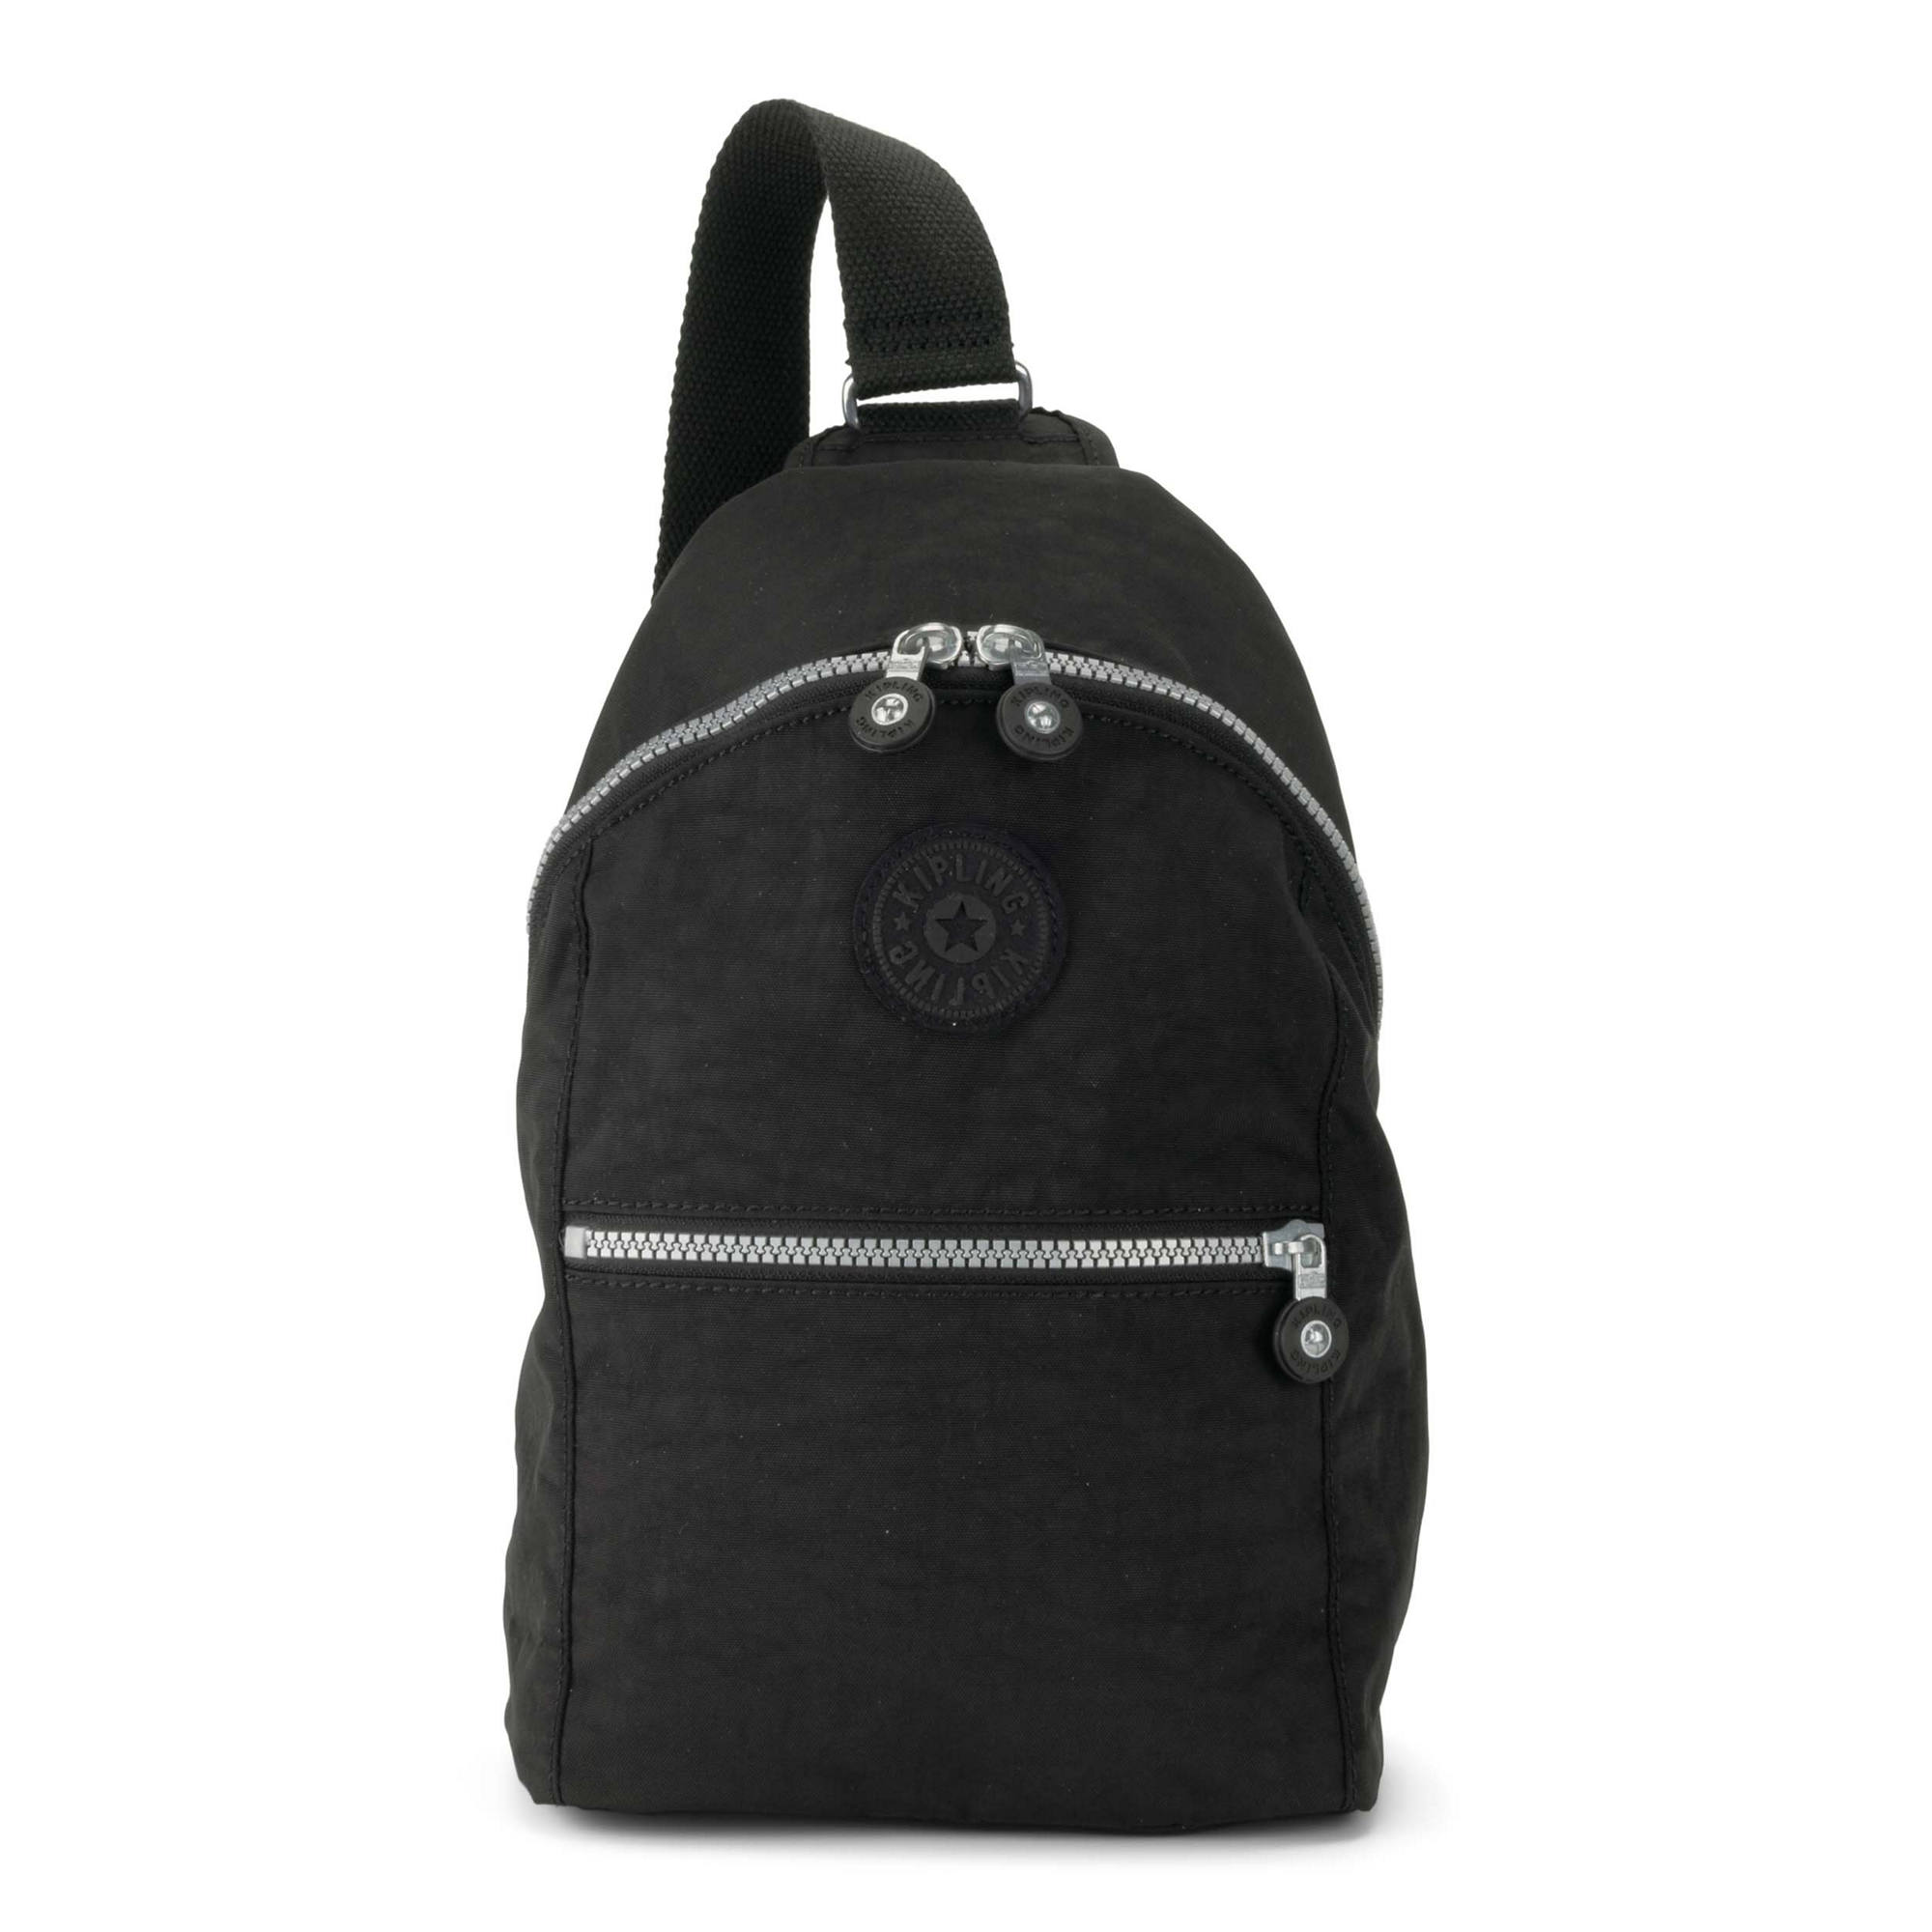 ccac17cb789 Bente Sling Backpack,Black Classic,large